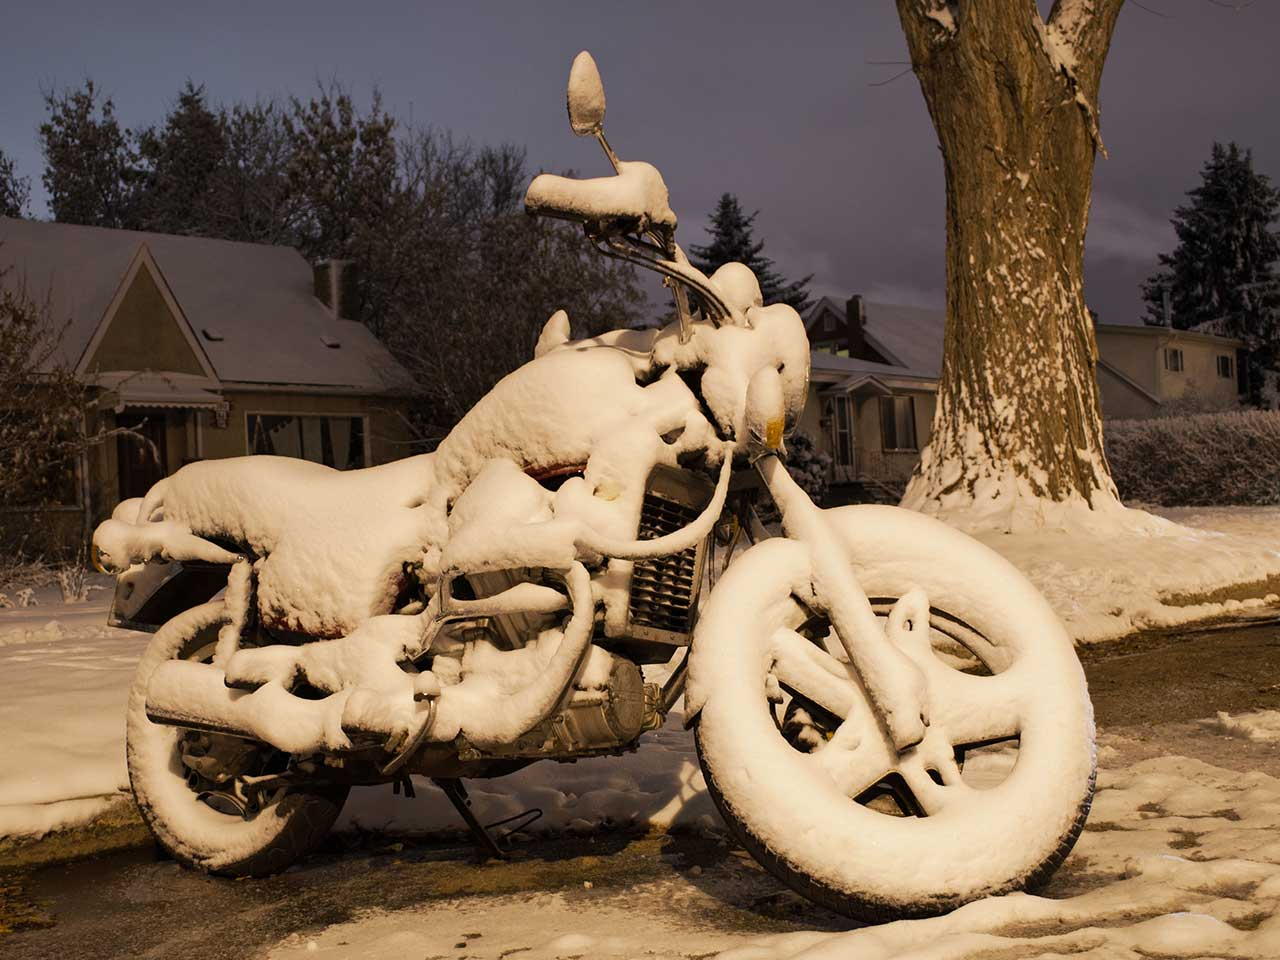 Motorbike covered in snow during the Winter